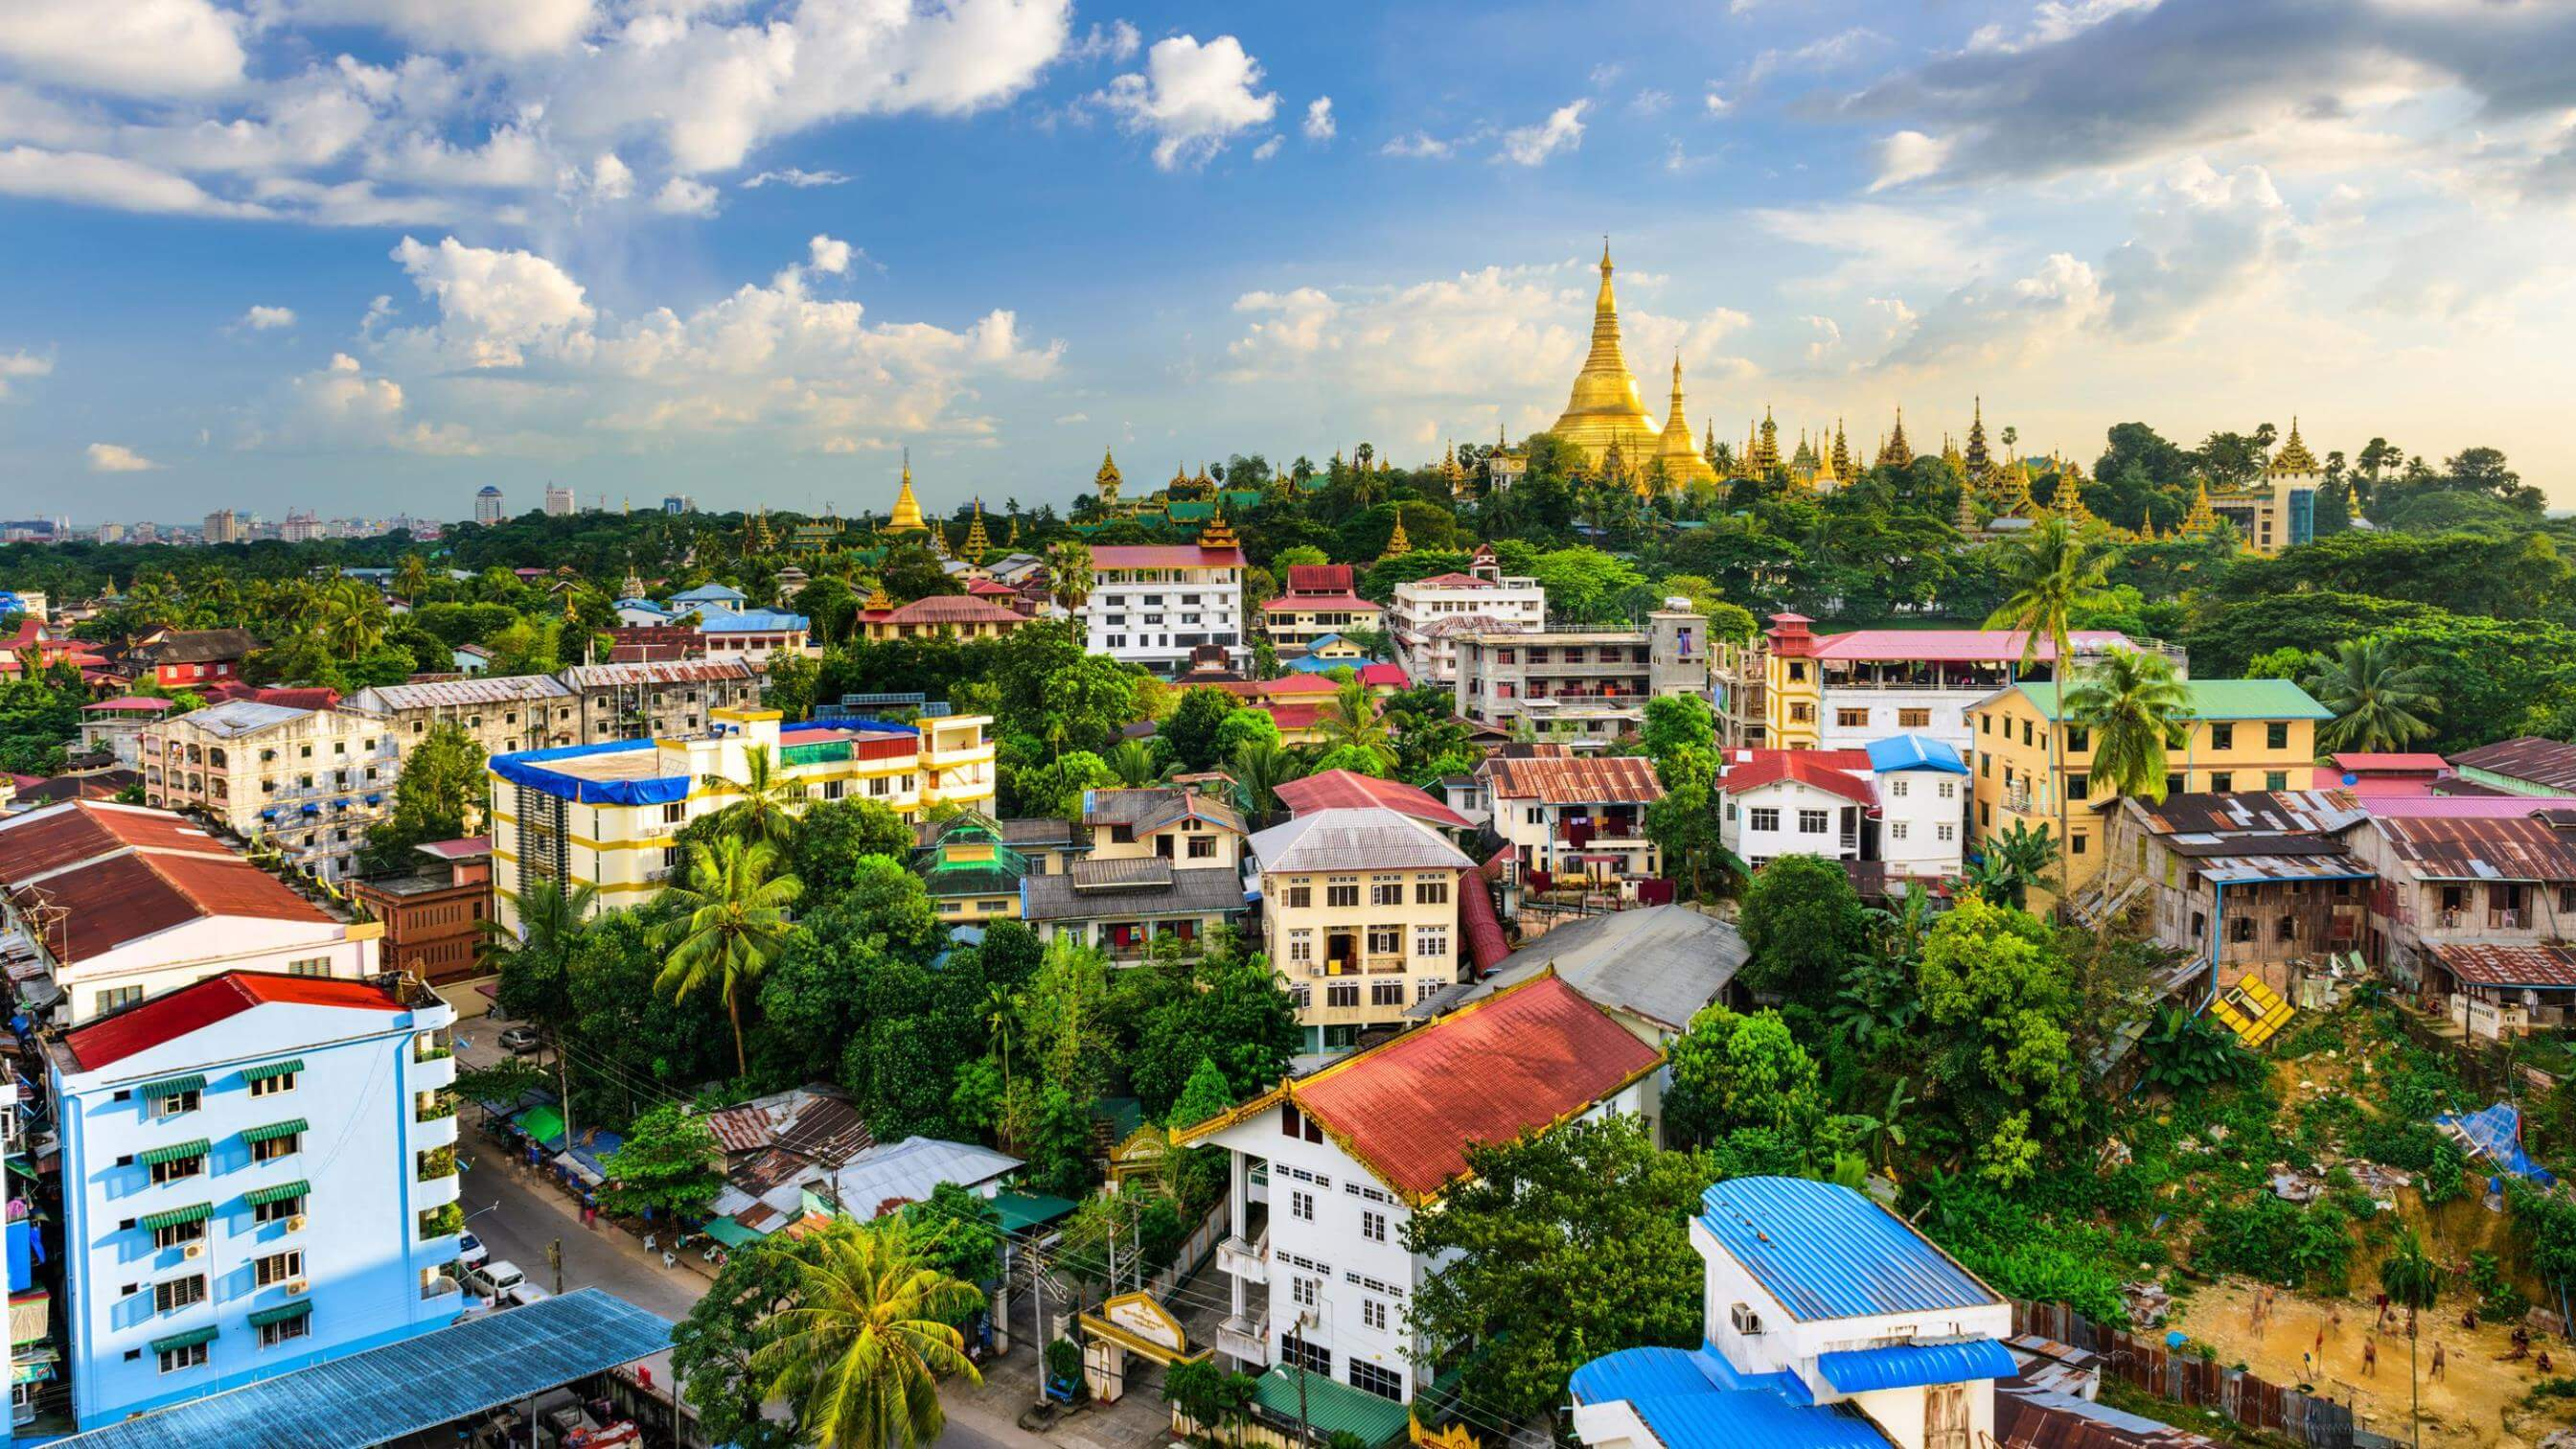 View across rooftops in Myanmar